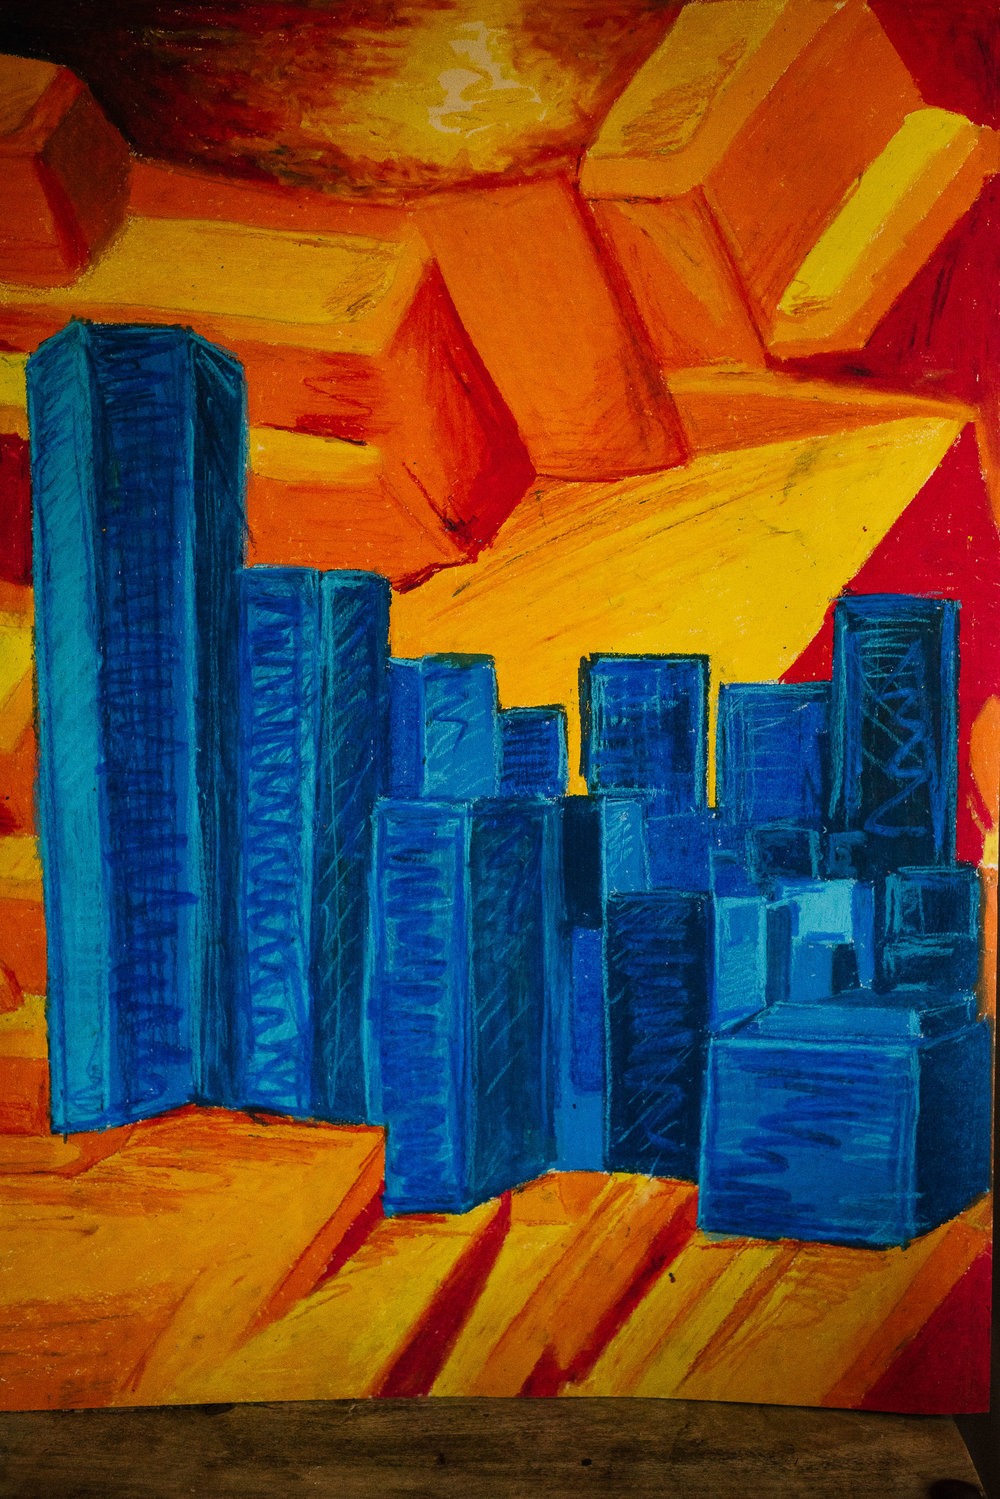 blue buildings on orange silicon backdrop ap art viara mileva